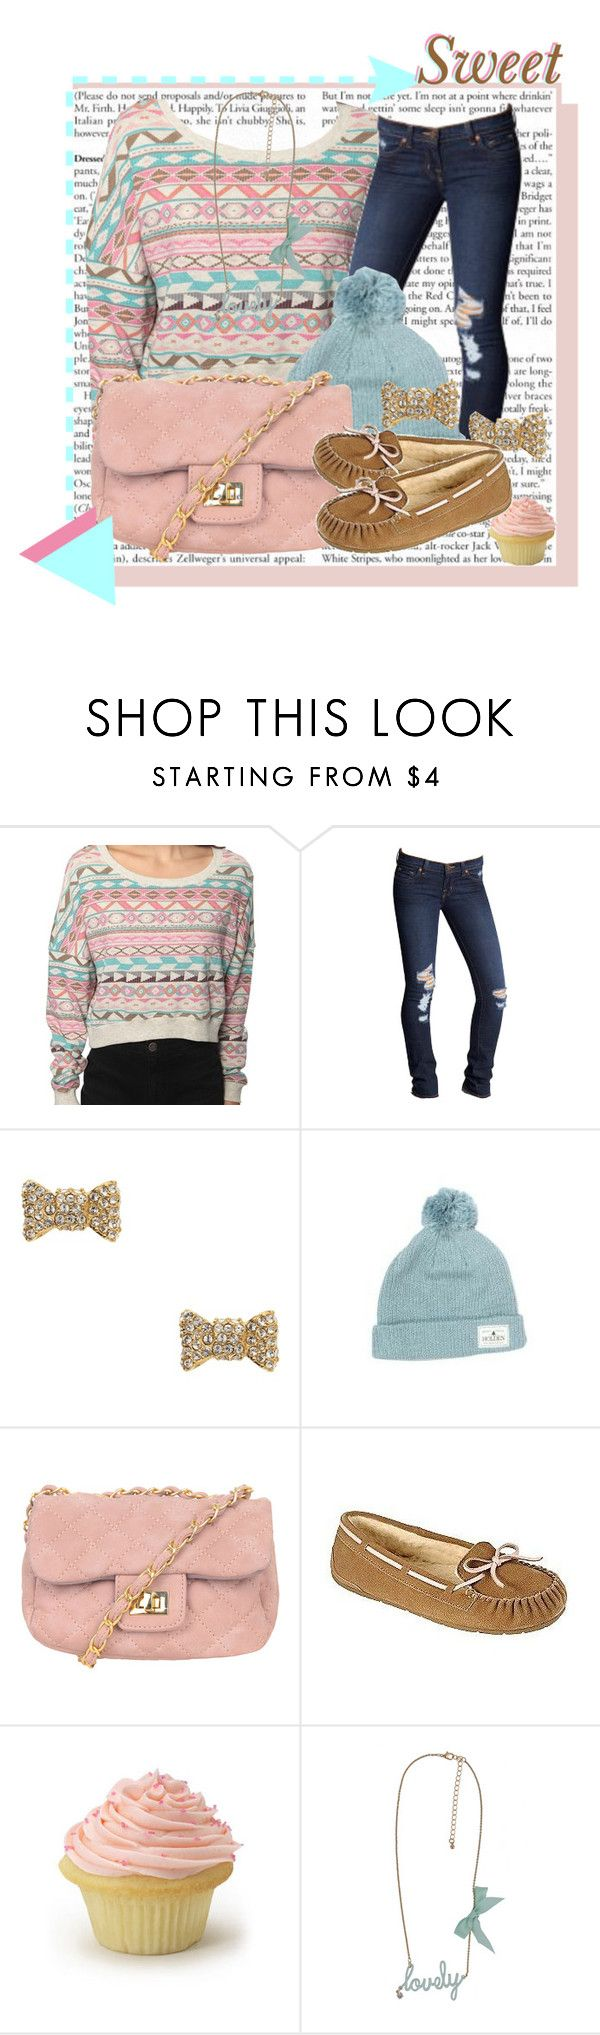 """Far Away-Tyga feat.Chris Richardson"" by nenedopesauce ❤ liked on Polyvore featuring Forever 21, J Brand, Kate Spade, TALLY WEiJL, Avenue, steez, swag, tyga, cupcakes and chris richardson"